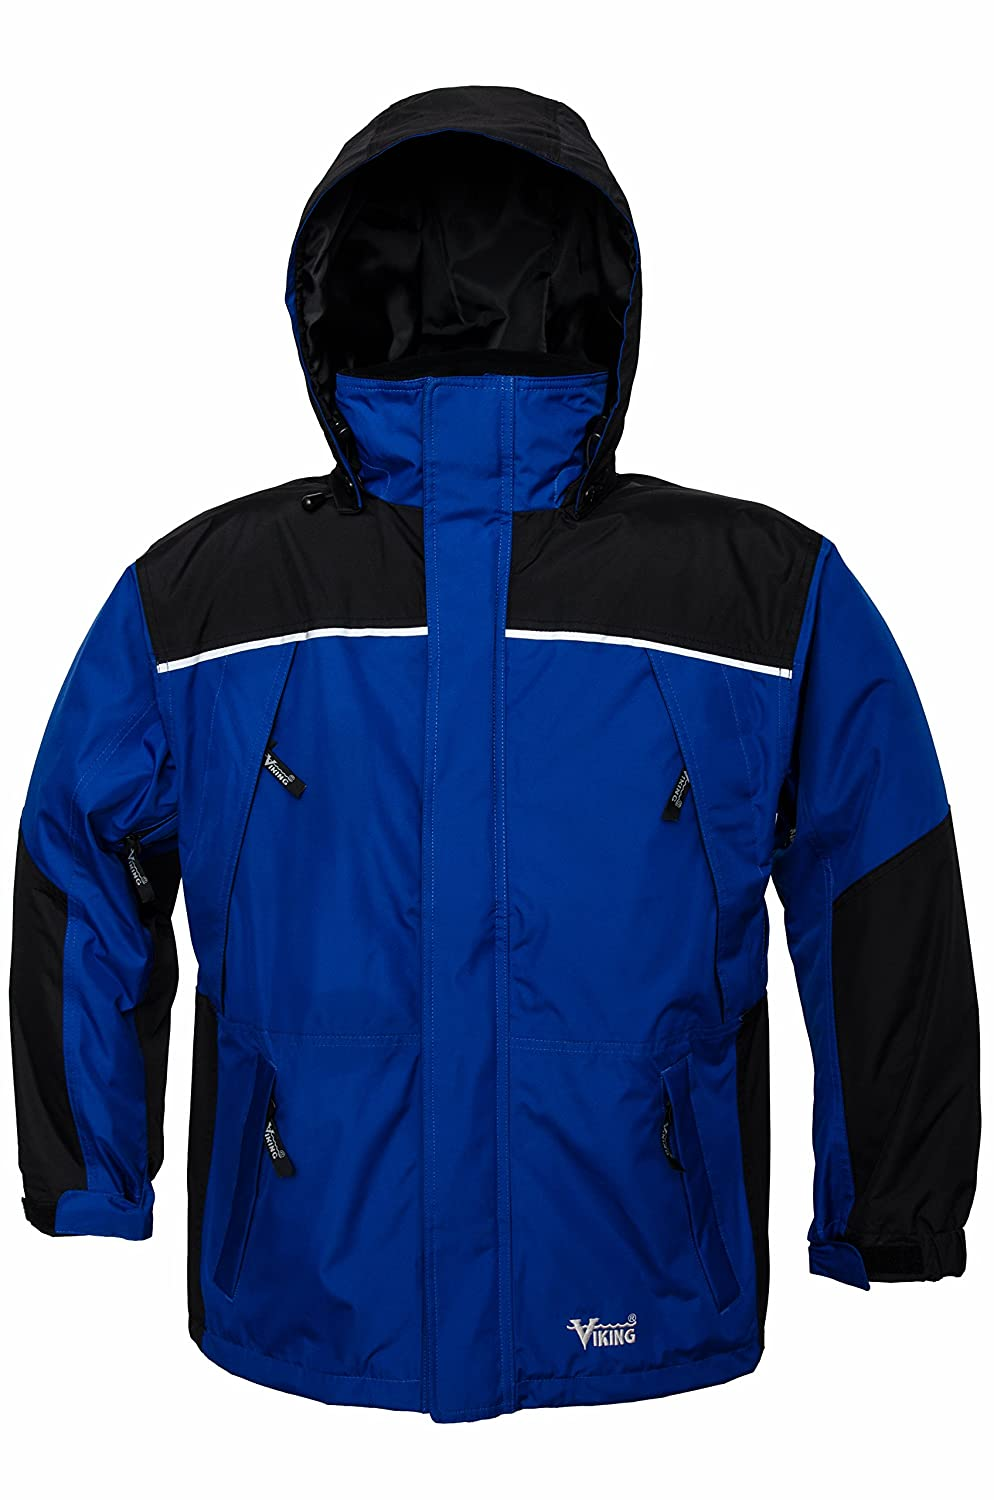 Viking Men's Tempest Classic Waterproof Rain Jacket 838